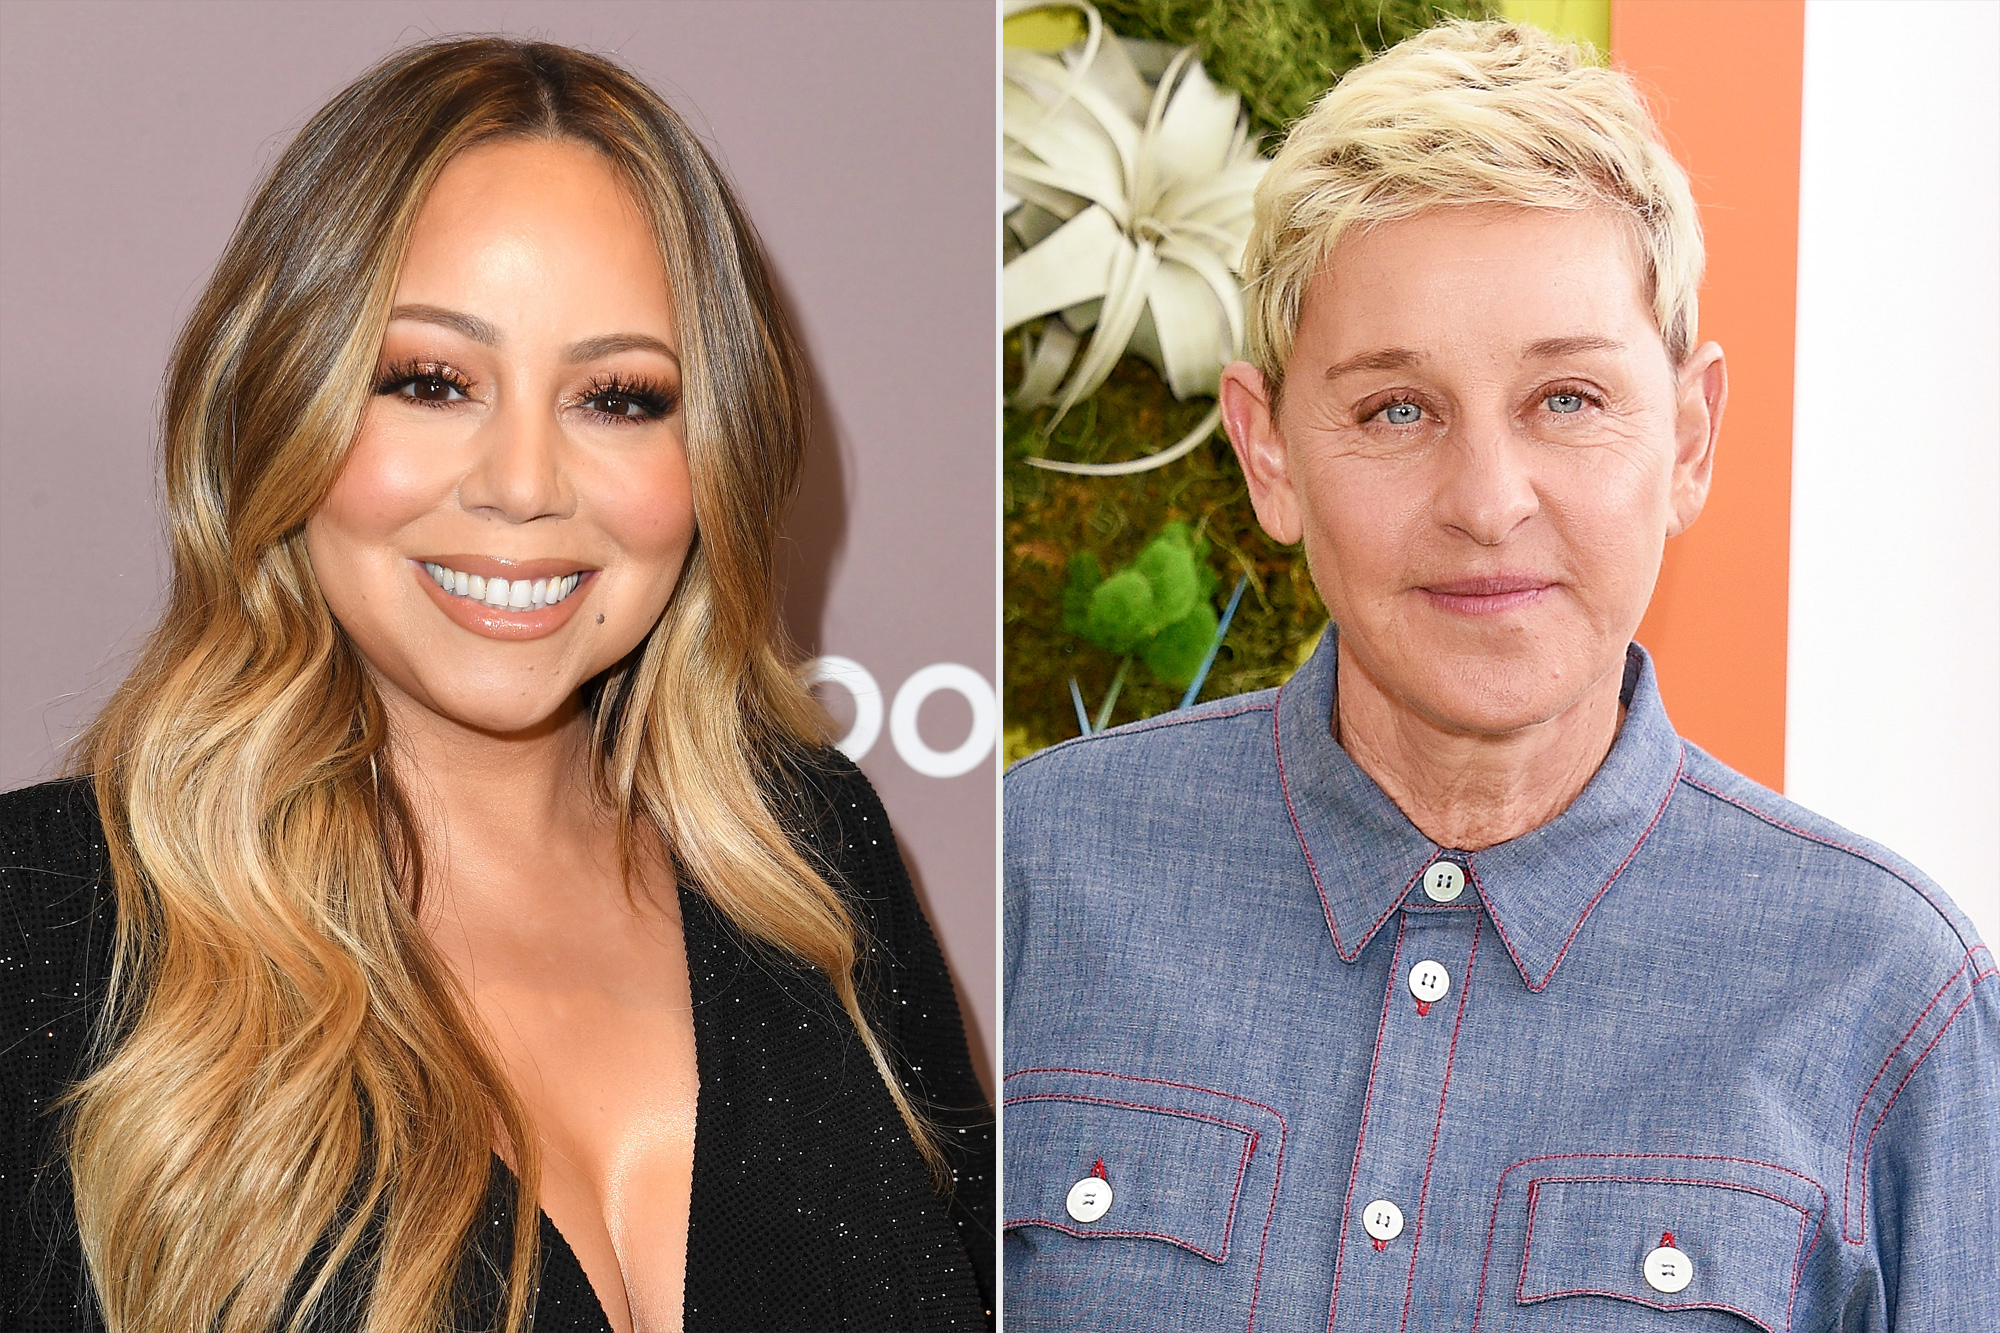 """mariah-carey-says-ellen-degeneres-made-her-extremely-uncomfortable-at-her-show"""